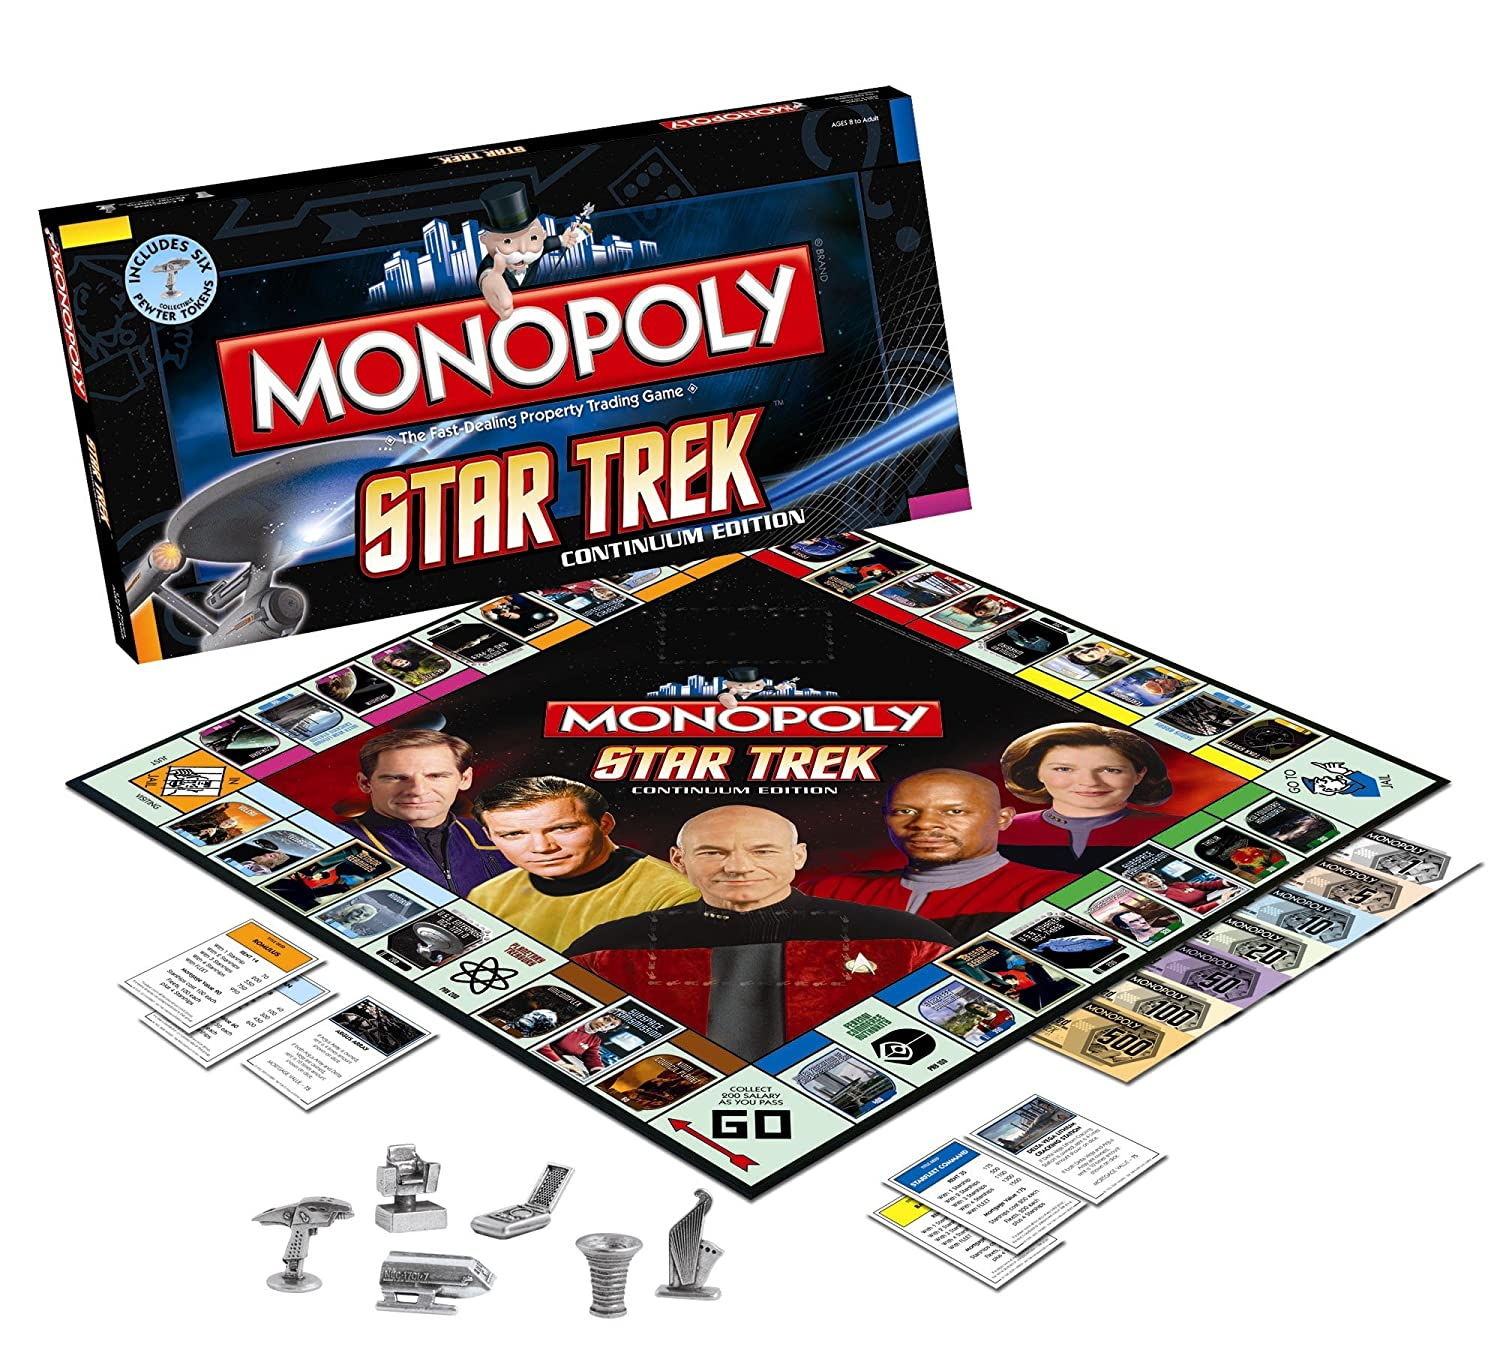 Monopoly Star Trek Collector's Edition - in English